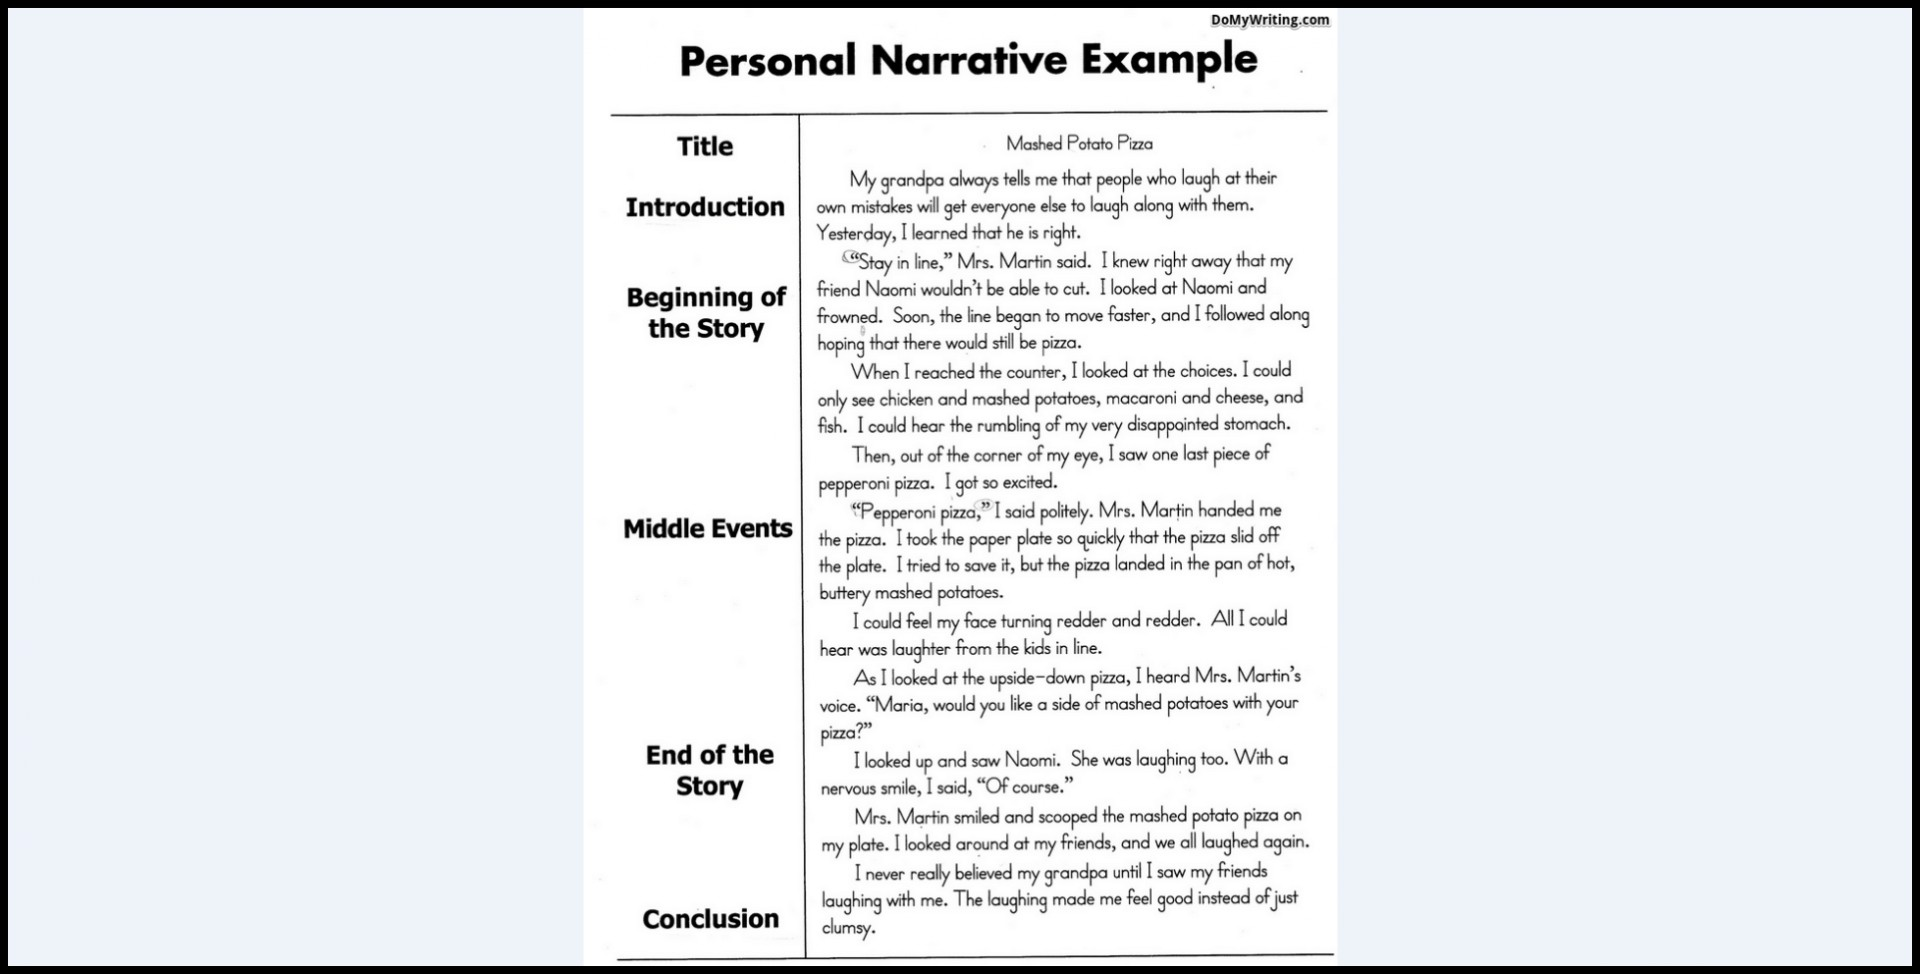 002 Narrative Essay Example What Is Breathtaking A In Third Person Pdf Most Like 1920